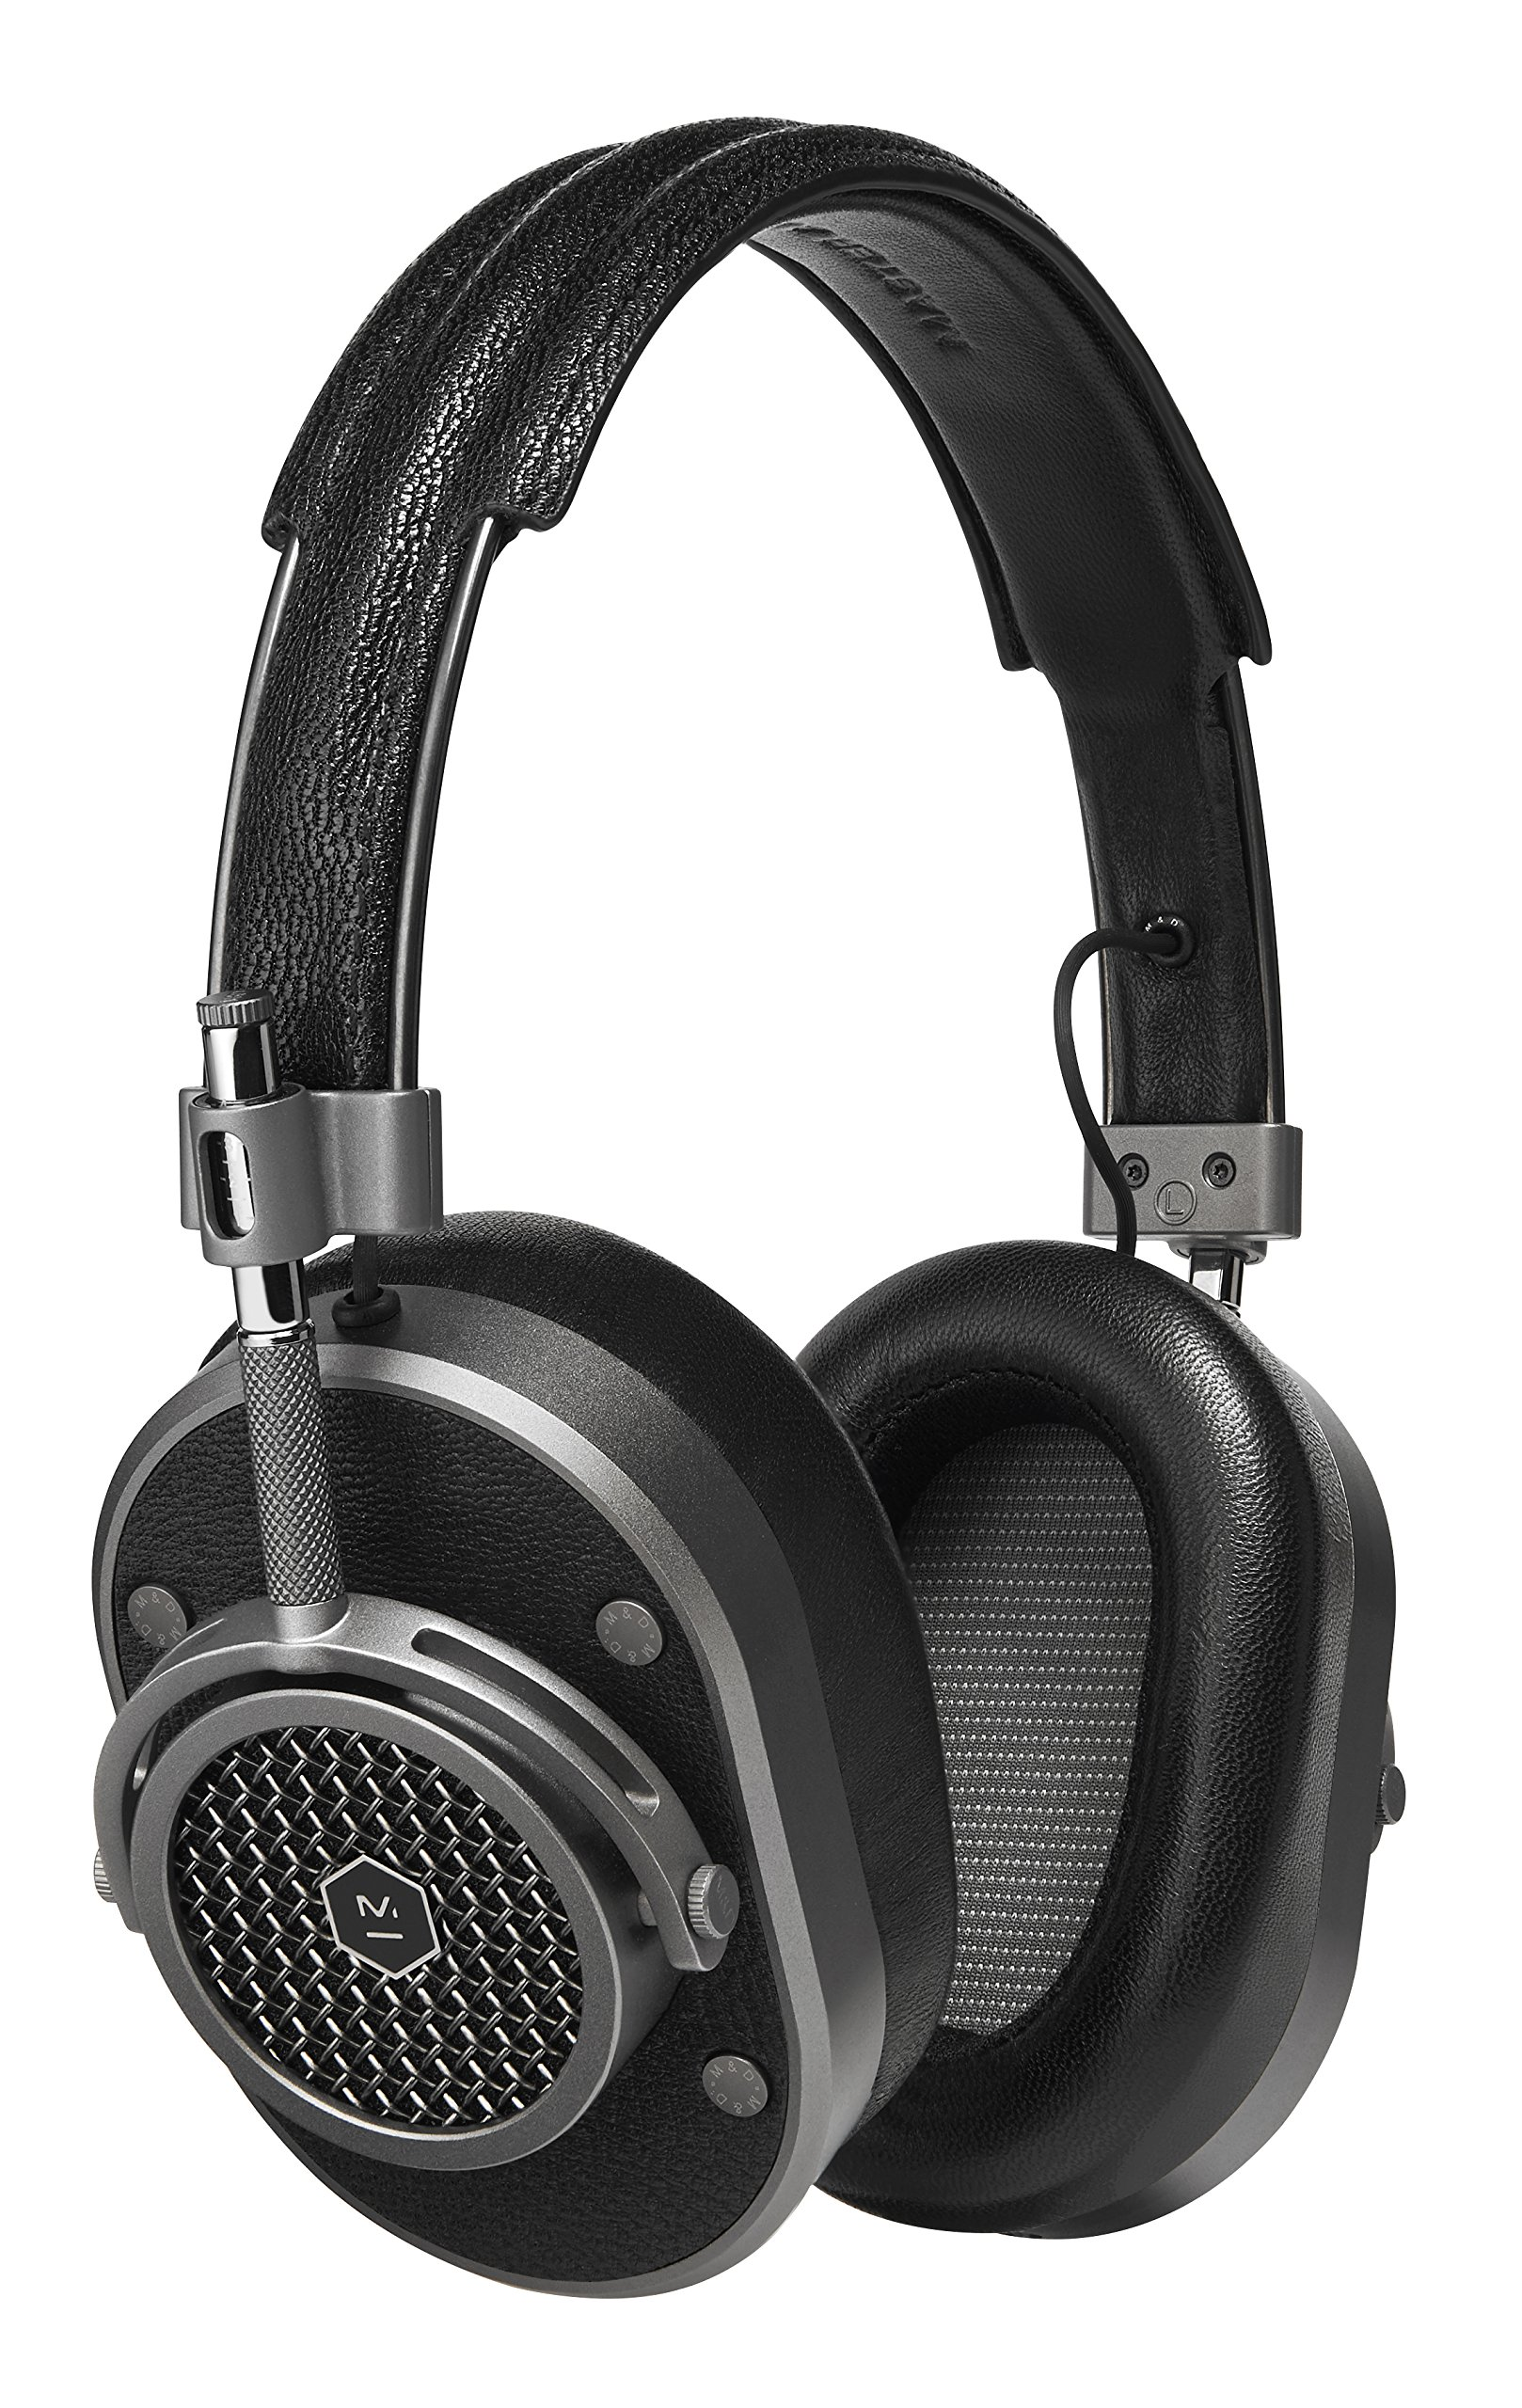 Master & Dynamic MH40 Over-Ear Headphones with Wire - Noise Isolating with Mic Recording Studio Headphones with Superior Sound by Master & Dynamic